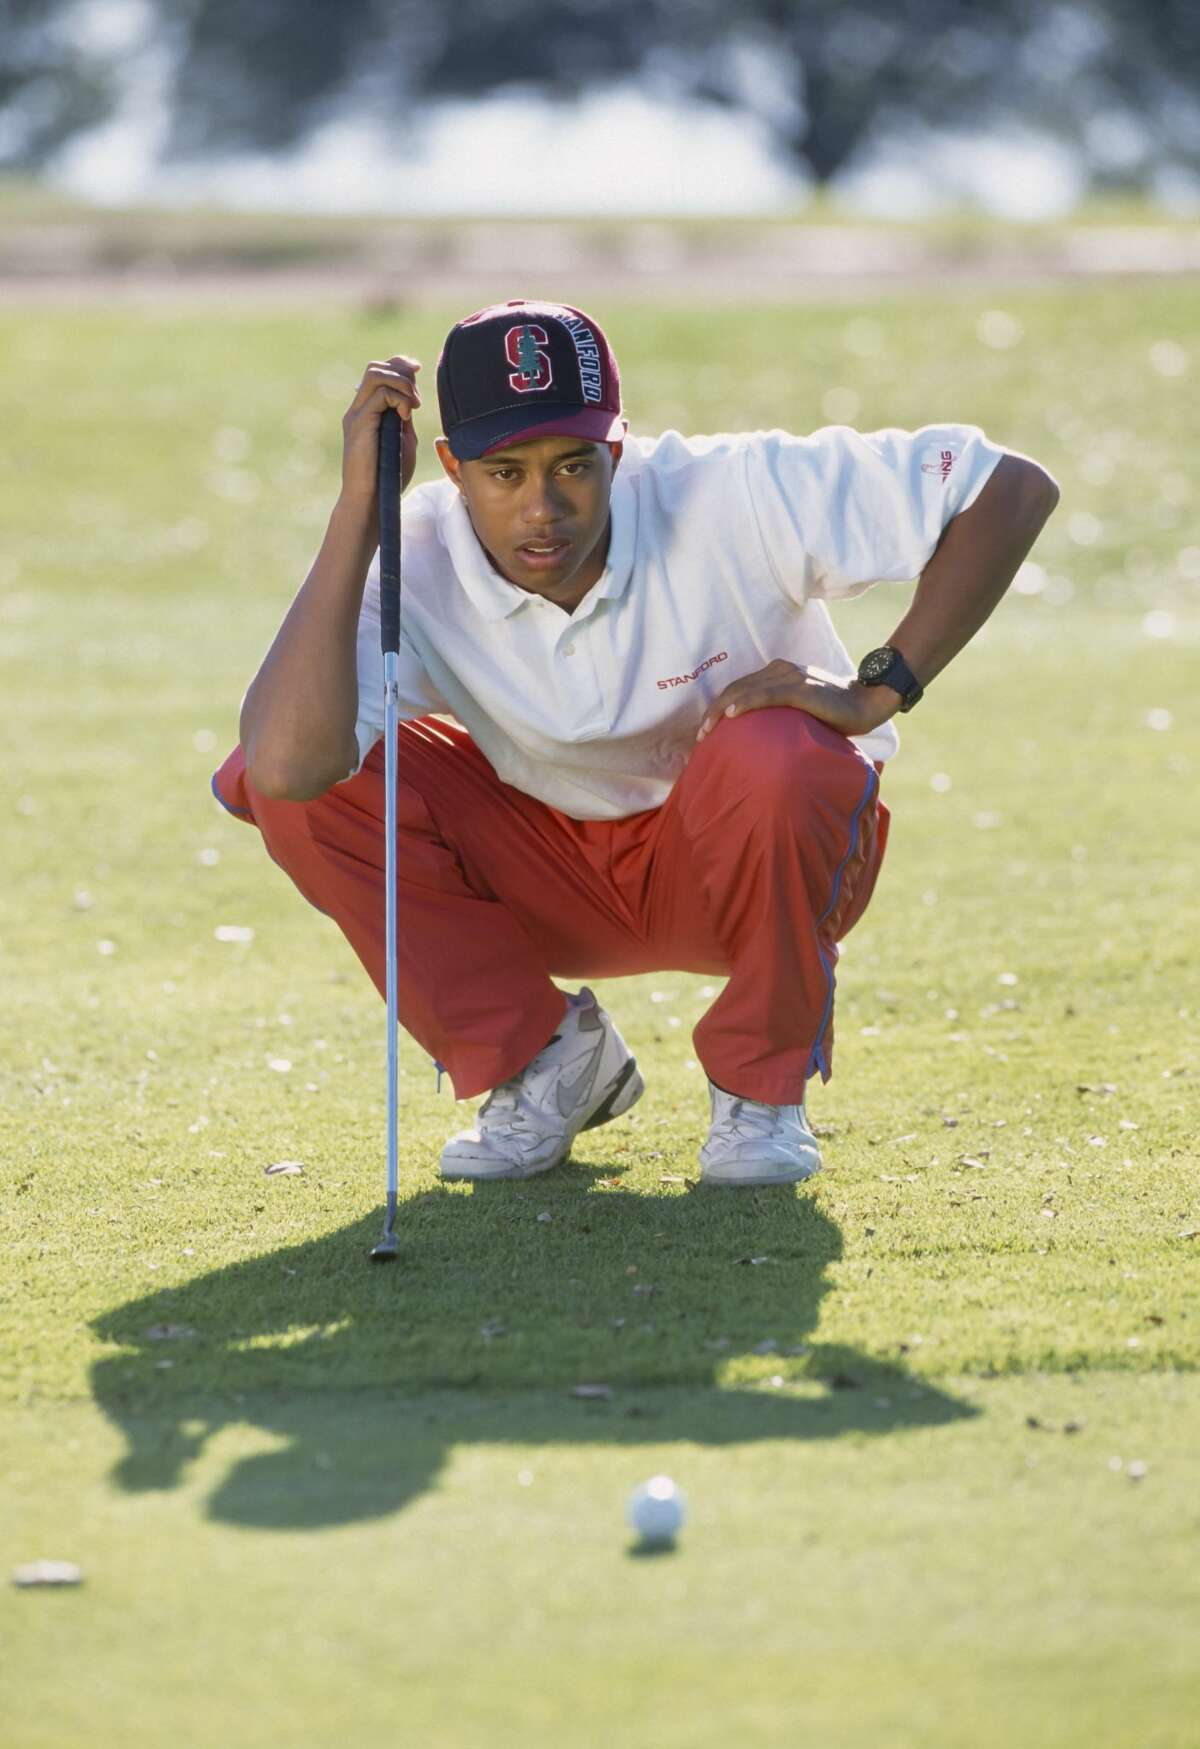 Tiger Woods: (golfer) Major:Economics Fun fact:Woods played golf at Stanford but dropped out after two years and become a pro.